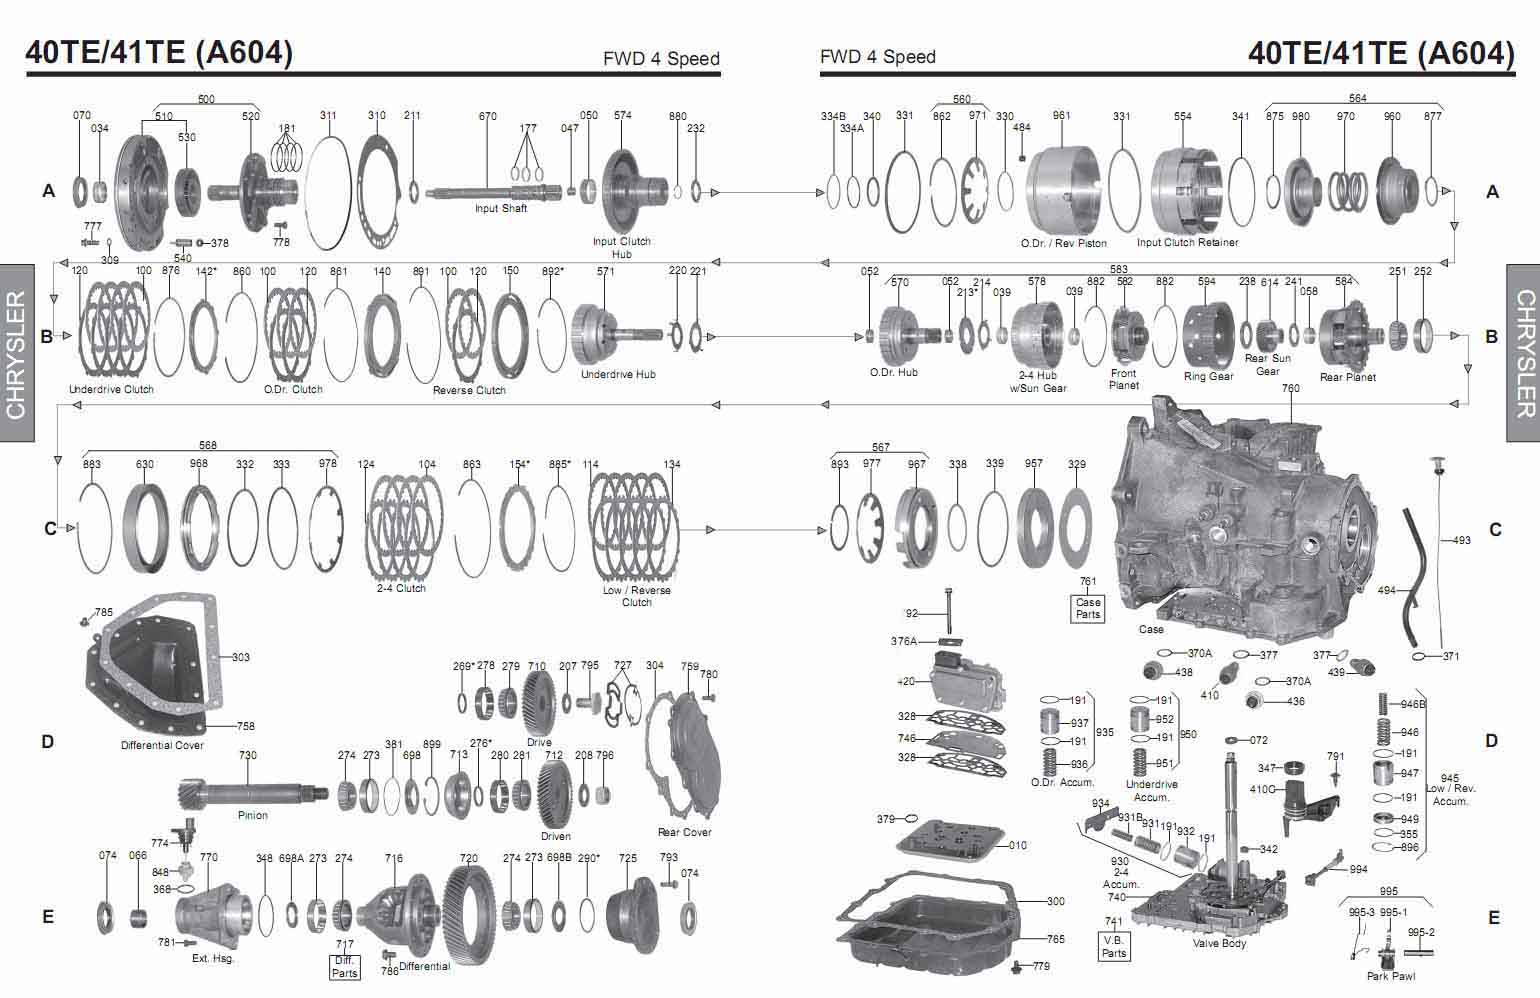 Transmission repair manuals A604, 40TE/ 41TE